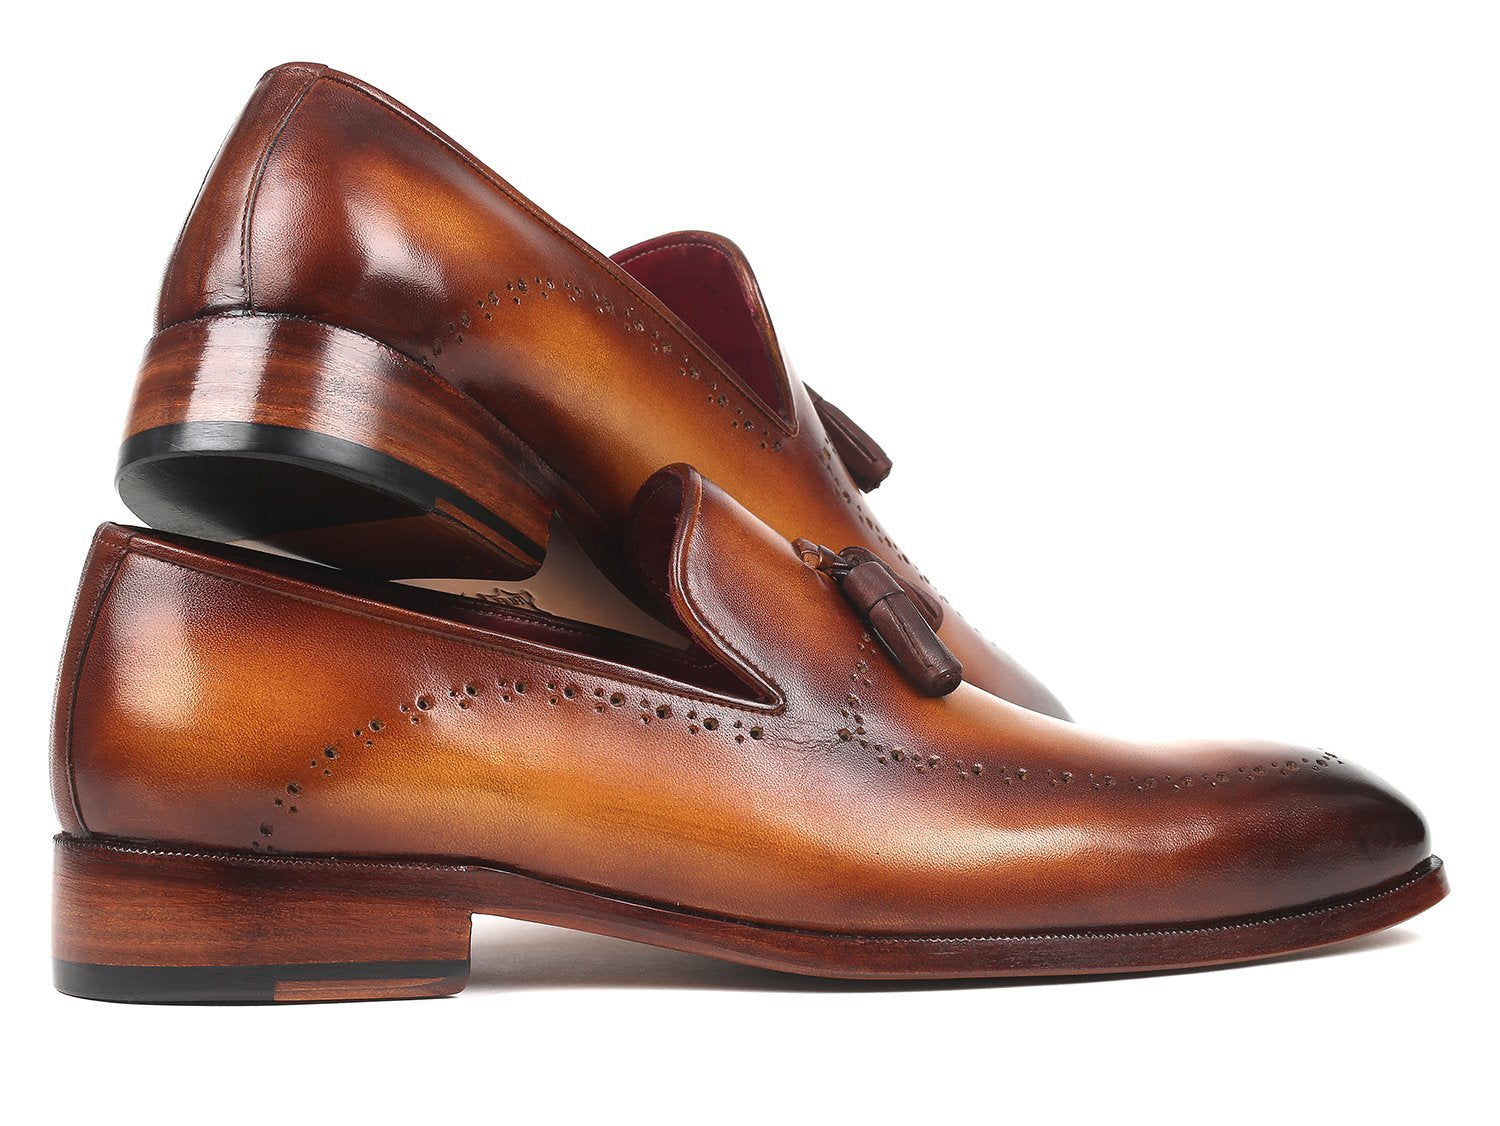 Paul Parkman Men's Tassel Loafer Brown (ID#66T81-BRW)